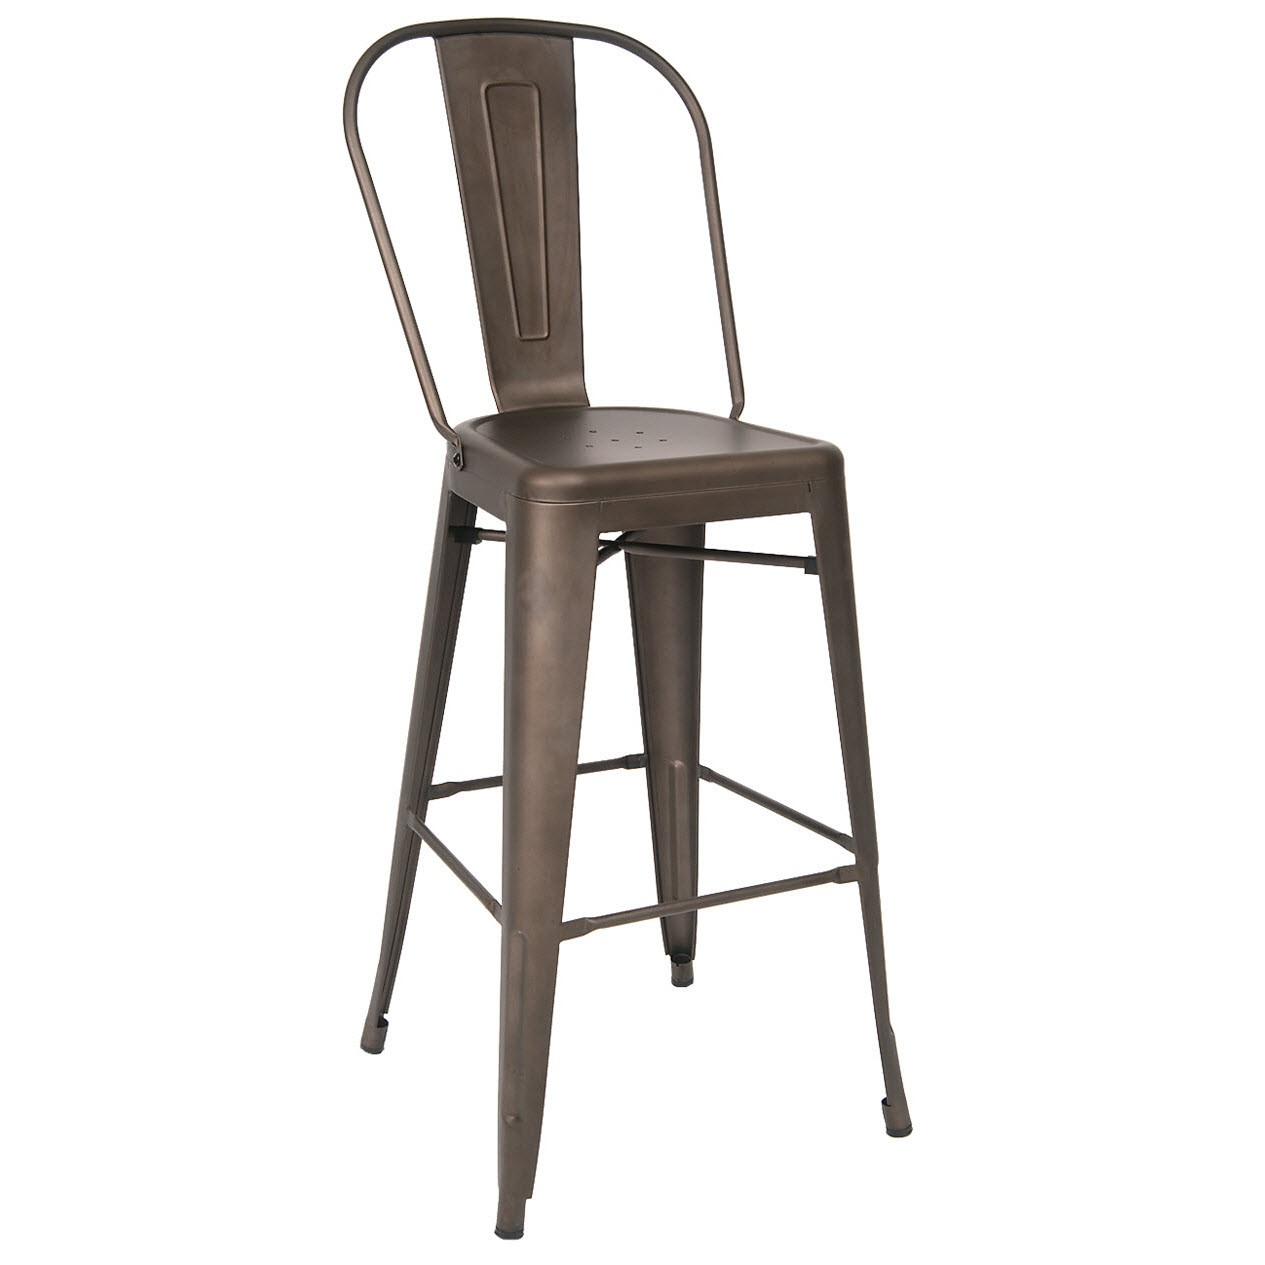 Bistro Style Metal Bar Stool In Dark Grey Finish